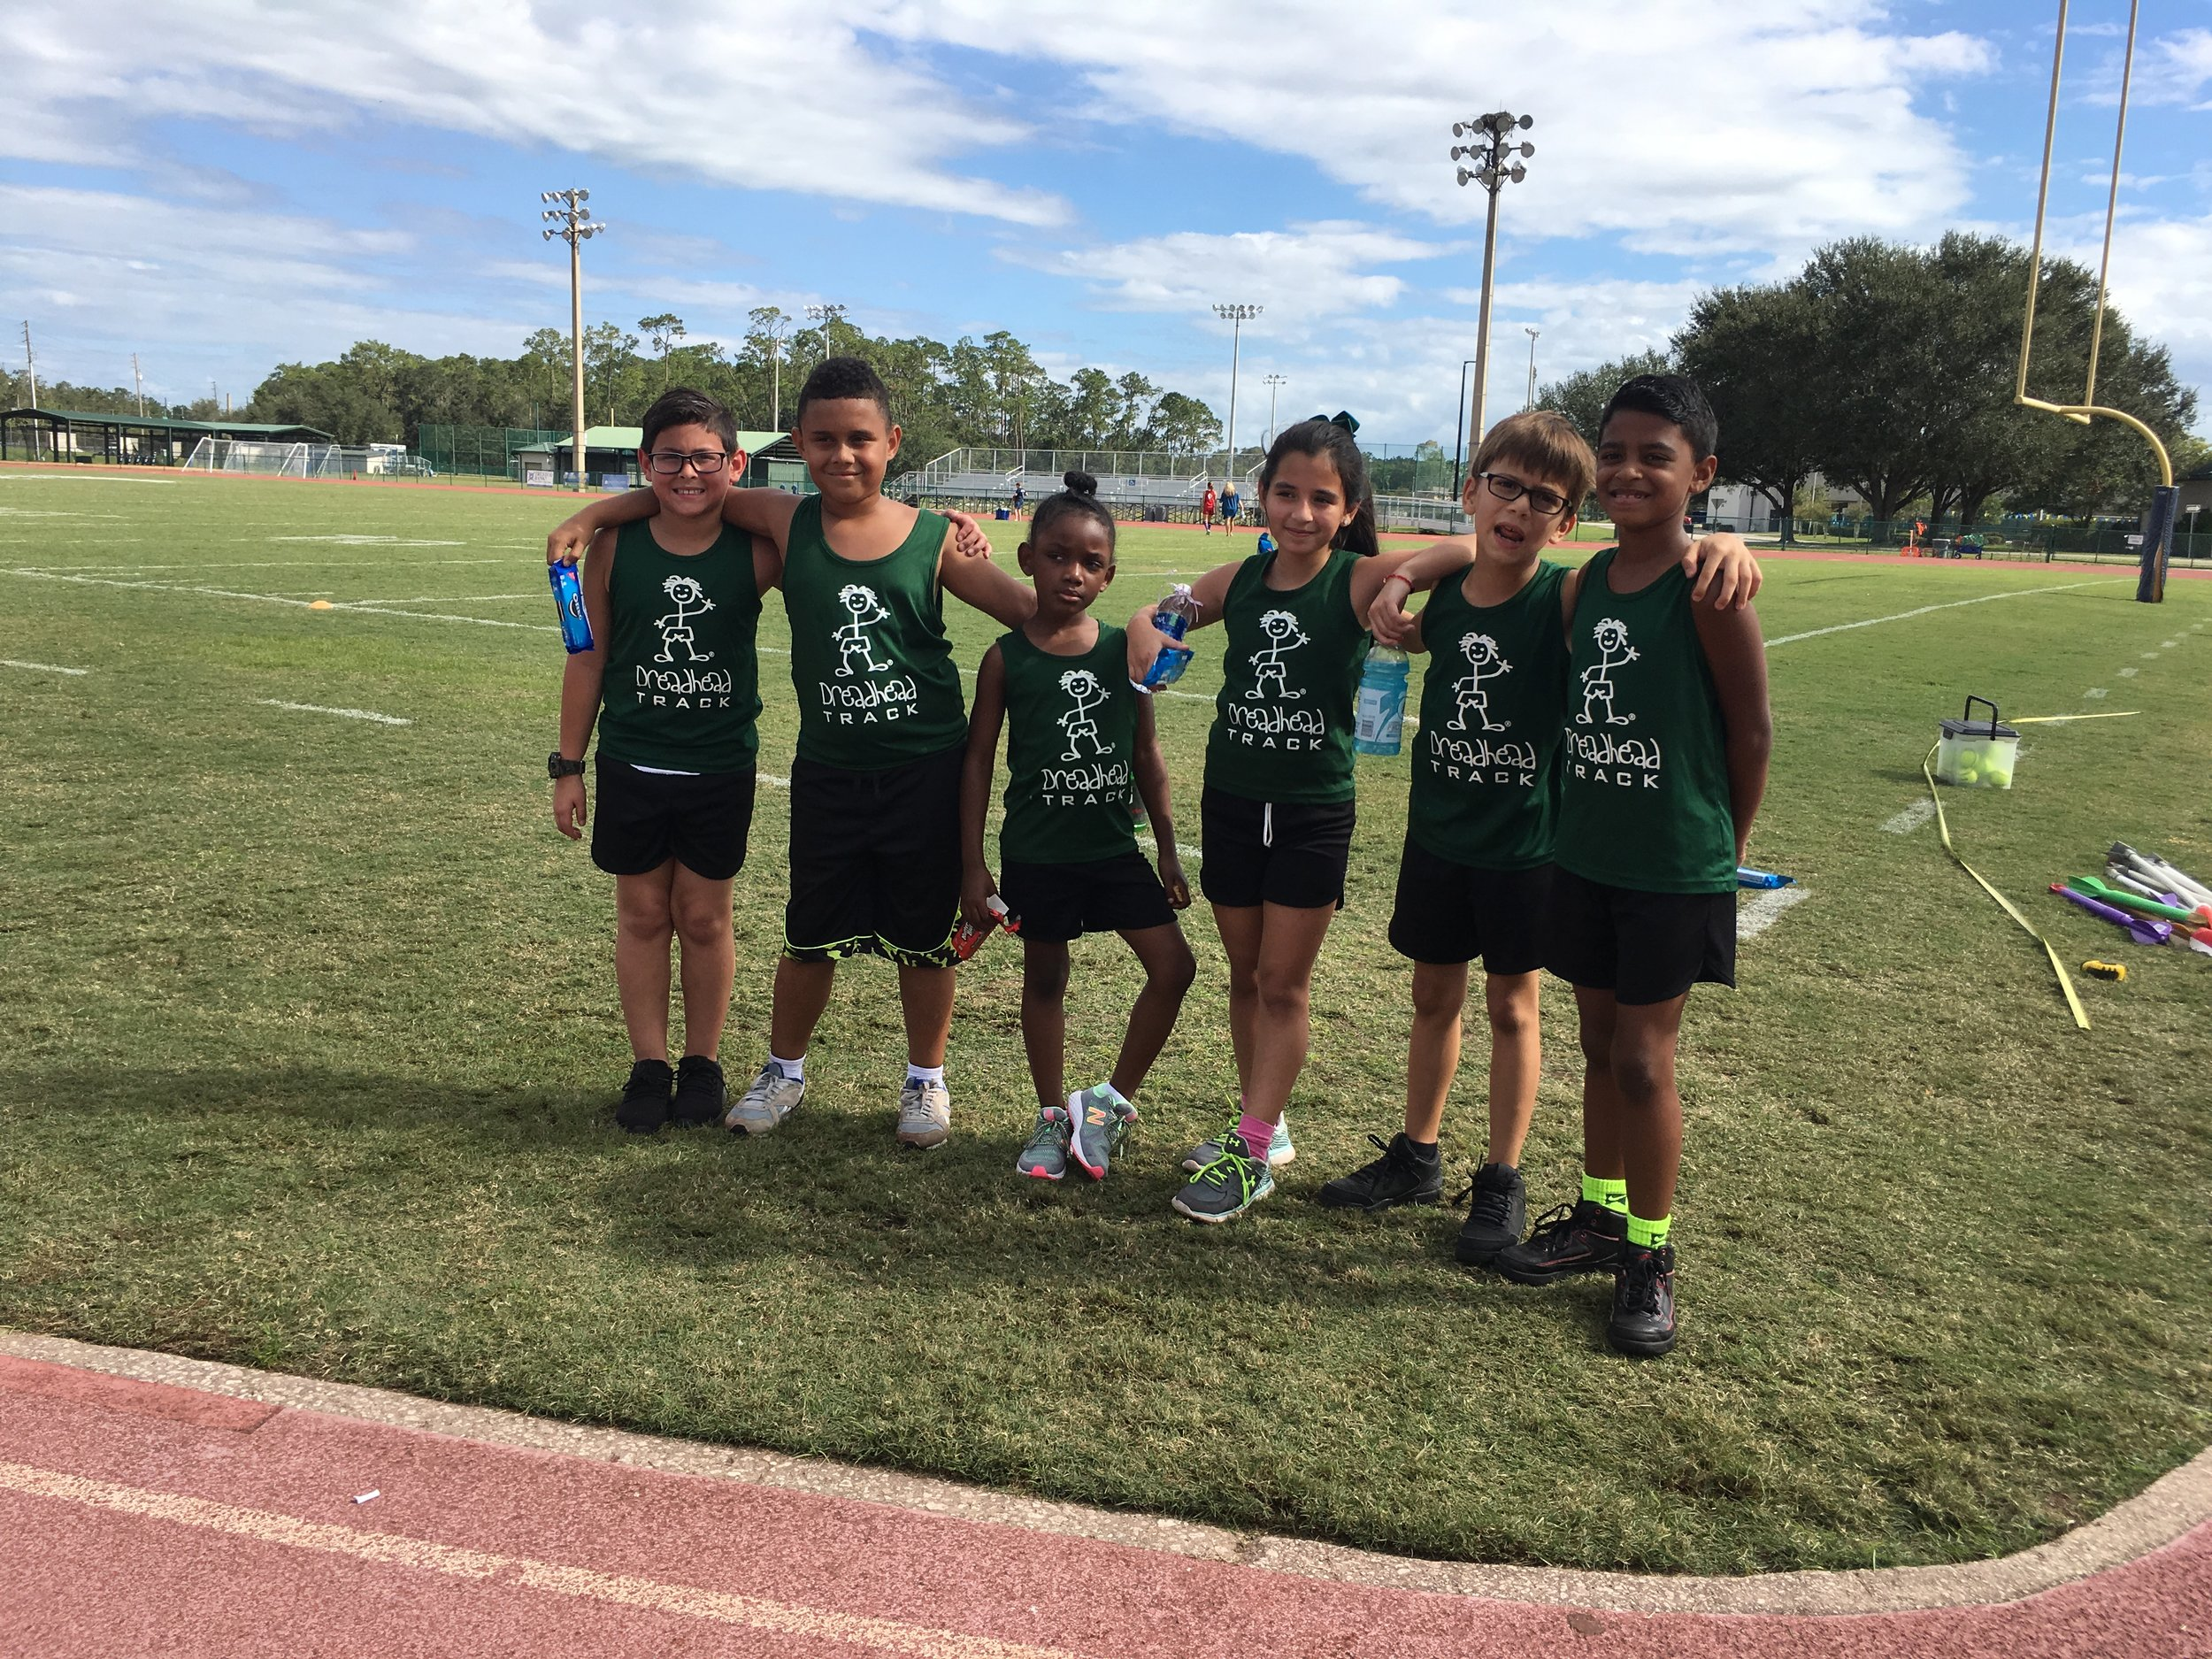 elementary track and field group pic.JPG